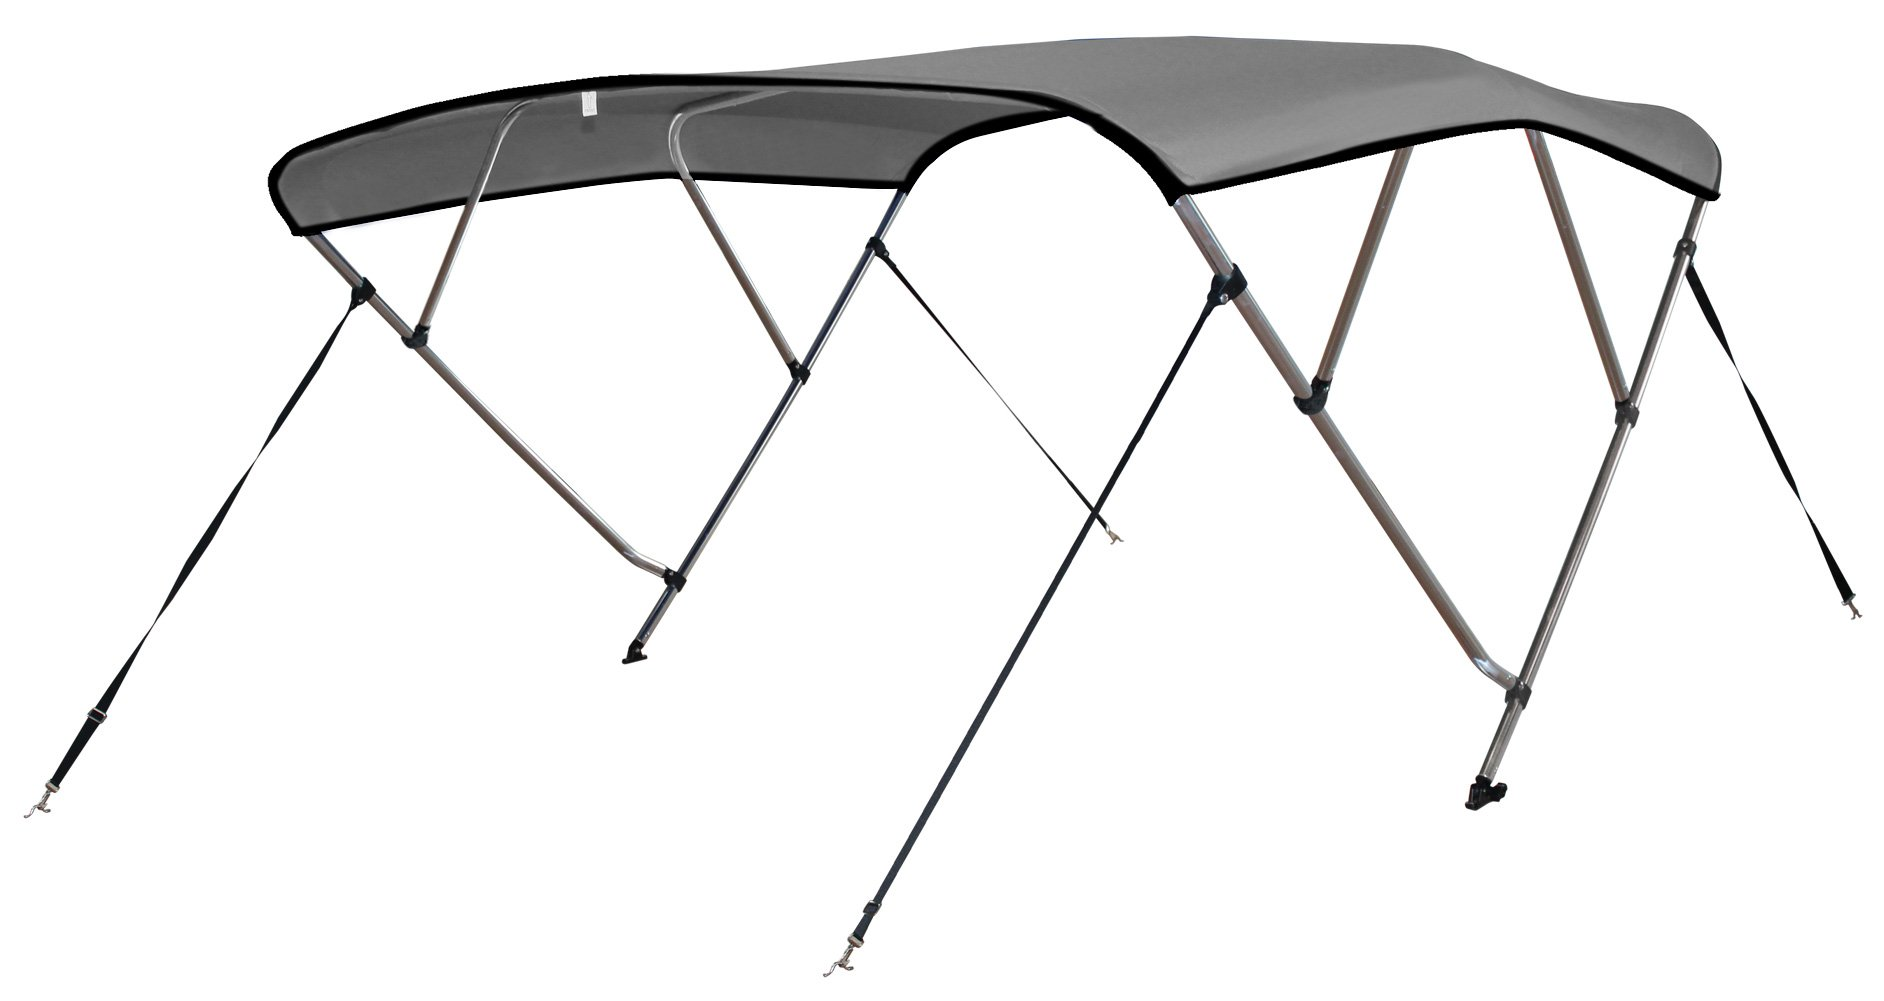 Leader Accessories 4 Bow Light Grey 8'L x 54'' H x 73''-78'' W Bimini Tops Boat Cover 4 Straps for Front and Rear Includes Hardwares with 1 Inch Aluminum Frame by Leader Accessories